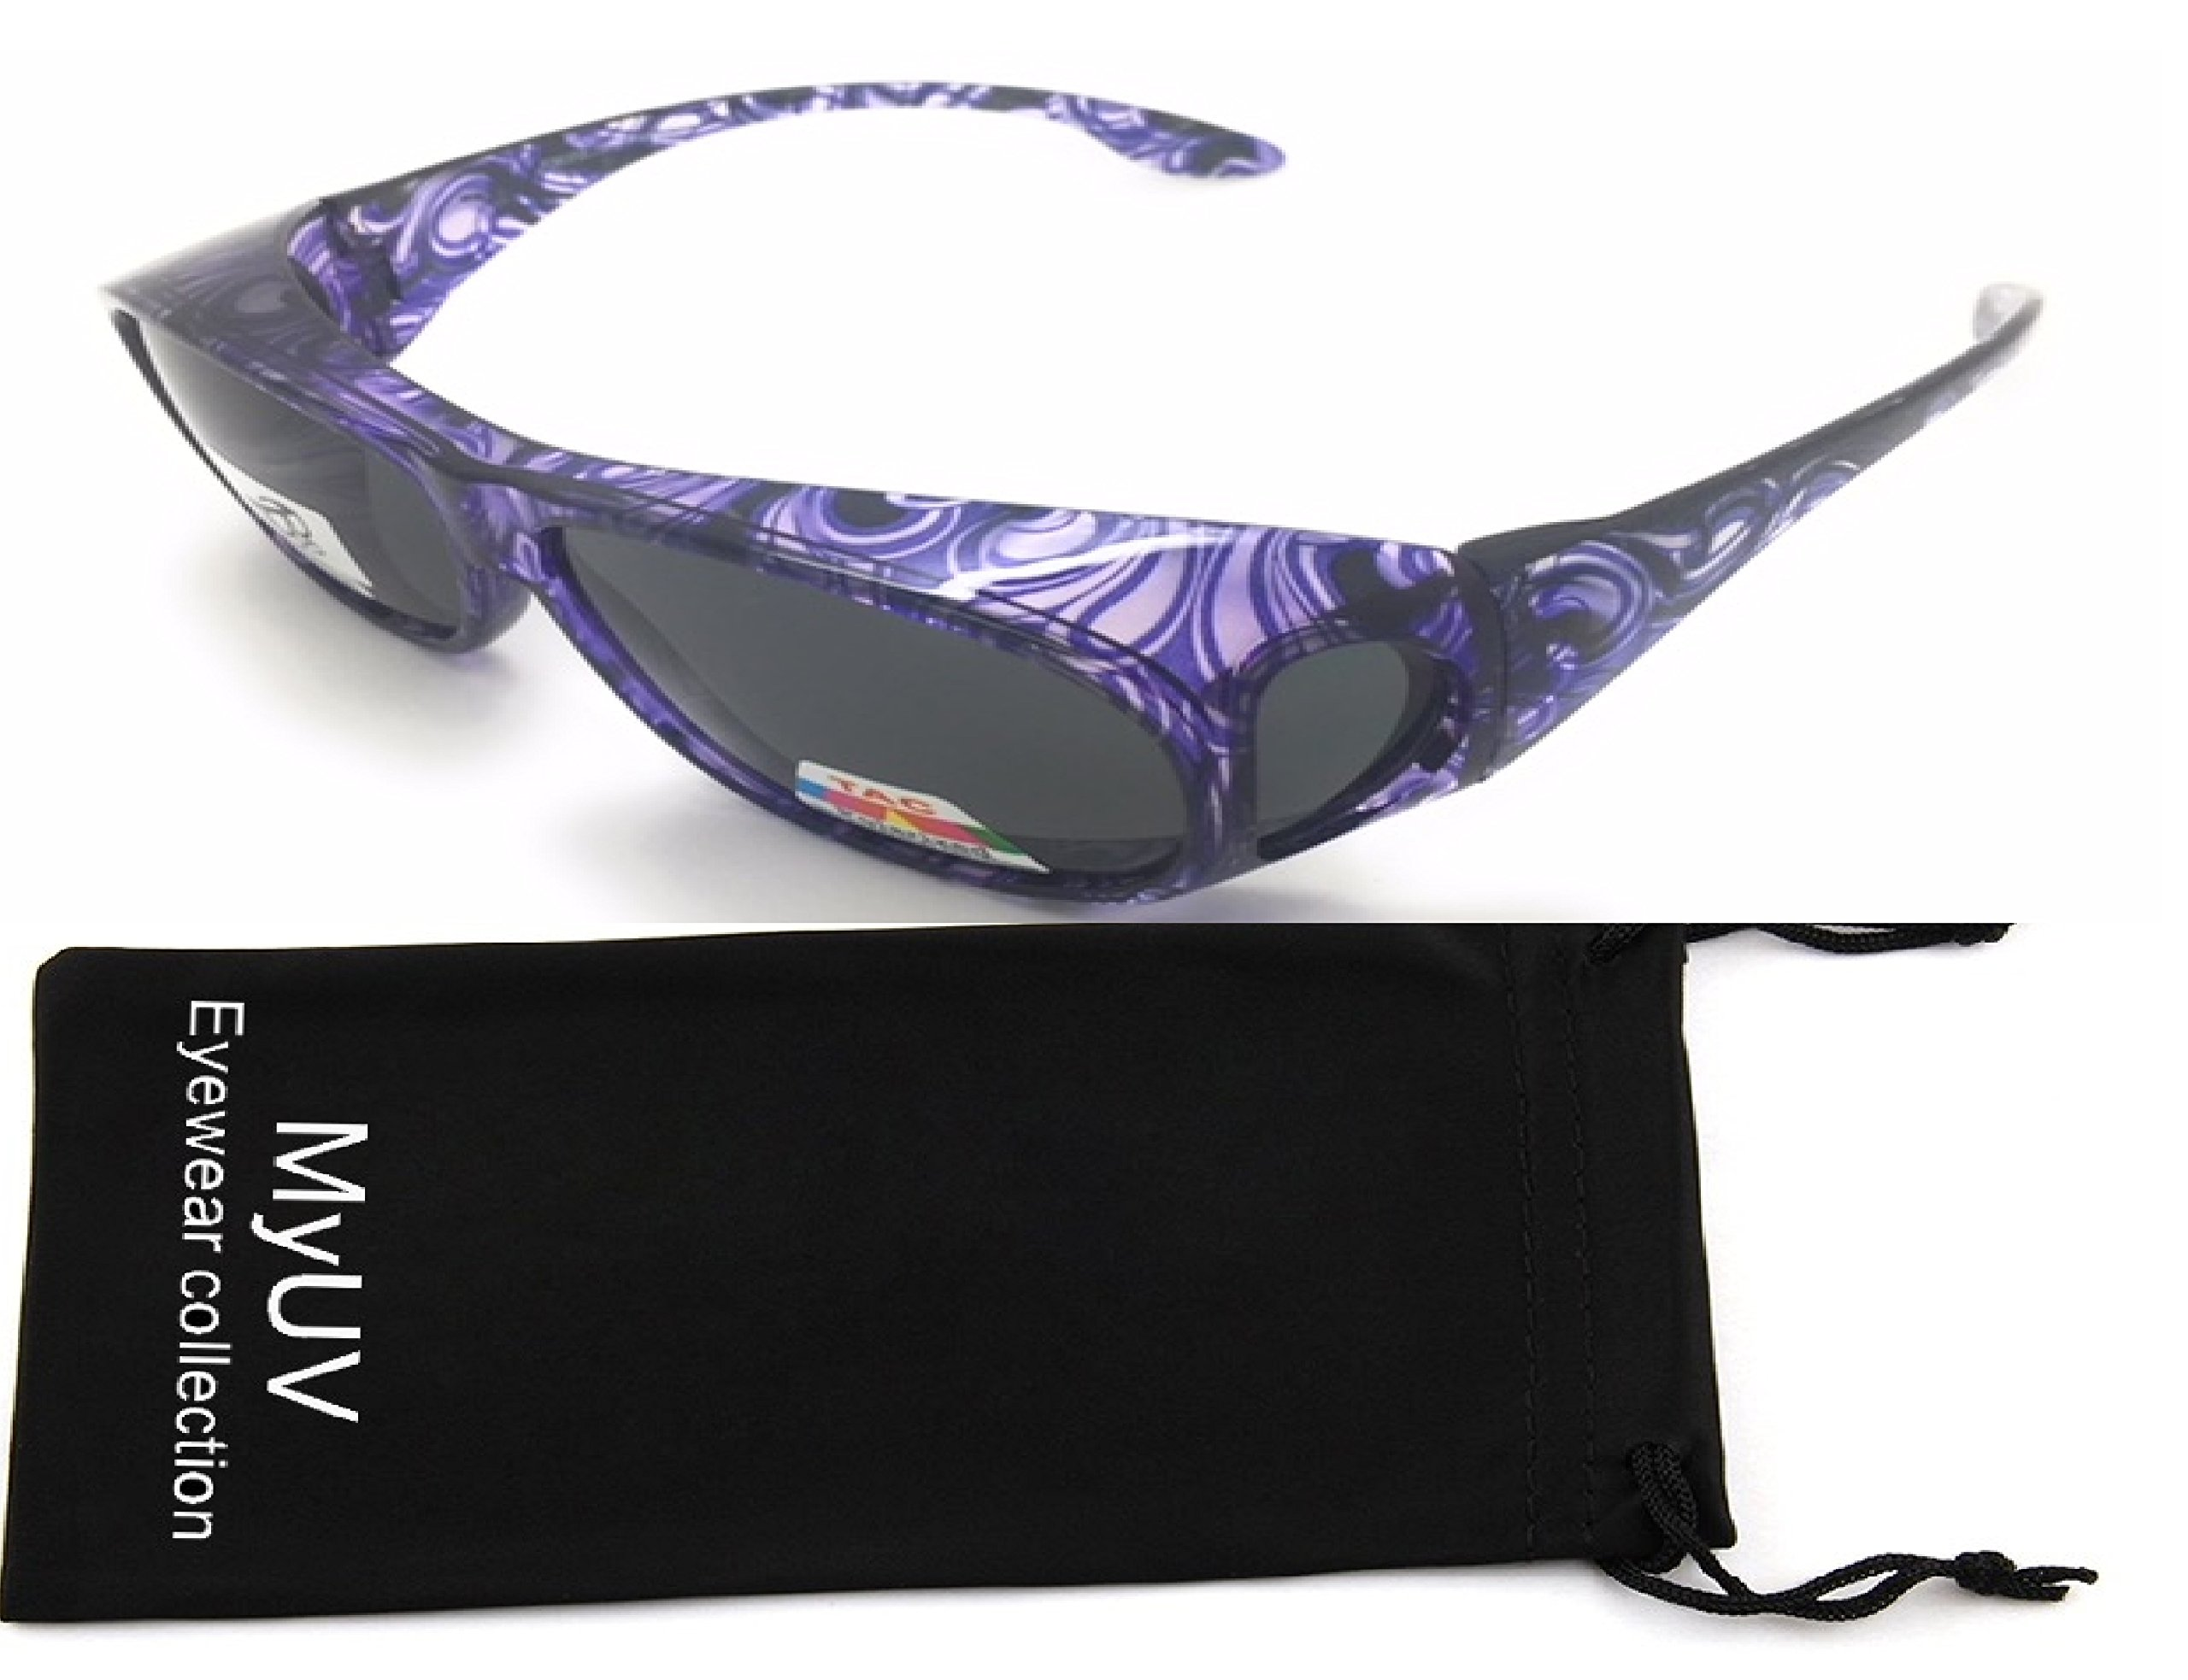 Polarized Fitovers Rhinestone Wear Over Glasses Size Large Oval Rectangular Fit Over Lens Cover Sunglasses (Polarized Purple)